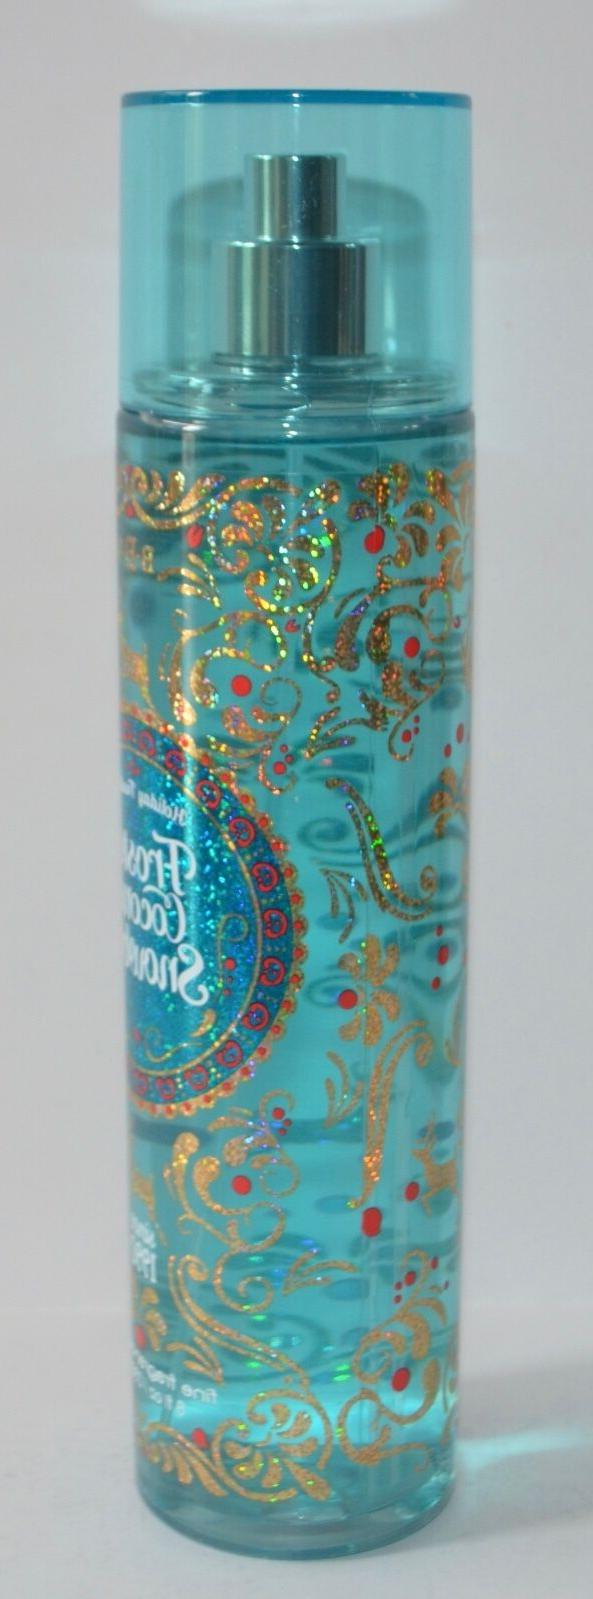 1 NEW BATH BODY WORKS FROSTED SNOWBALL FINE SPRAY